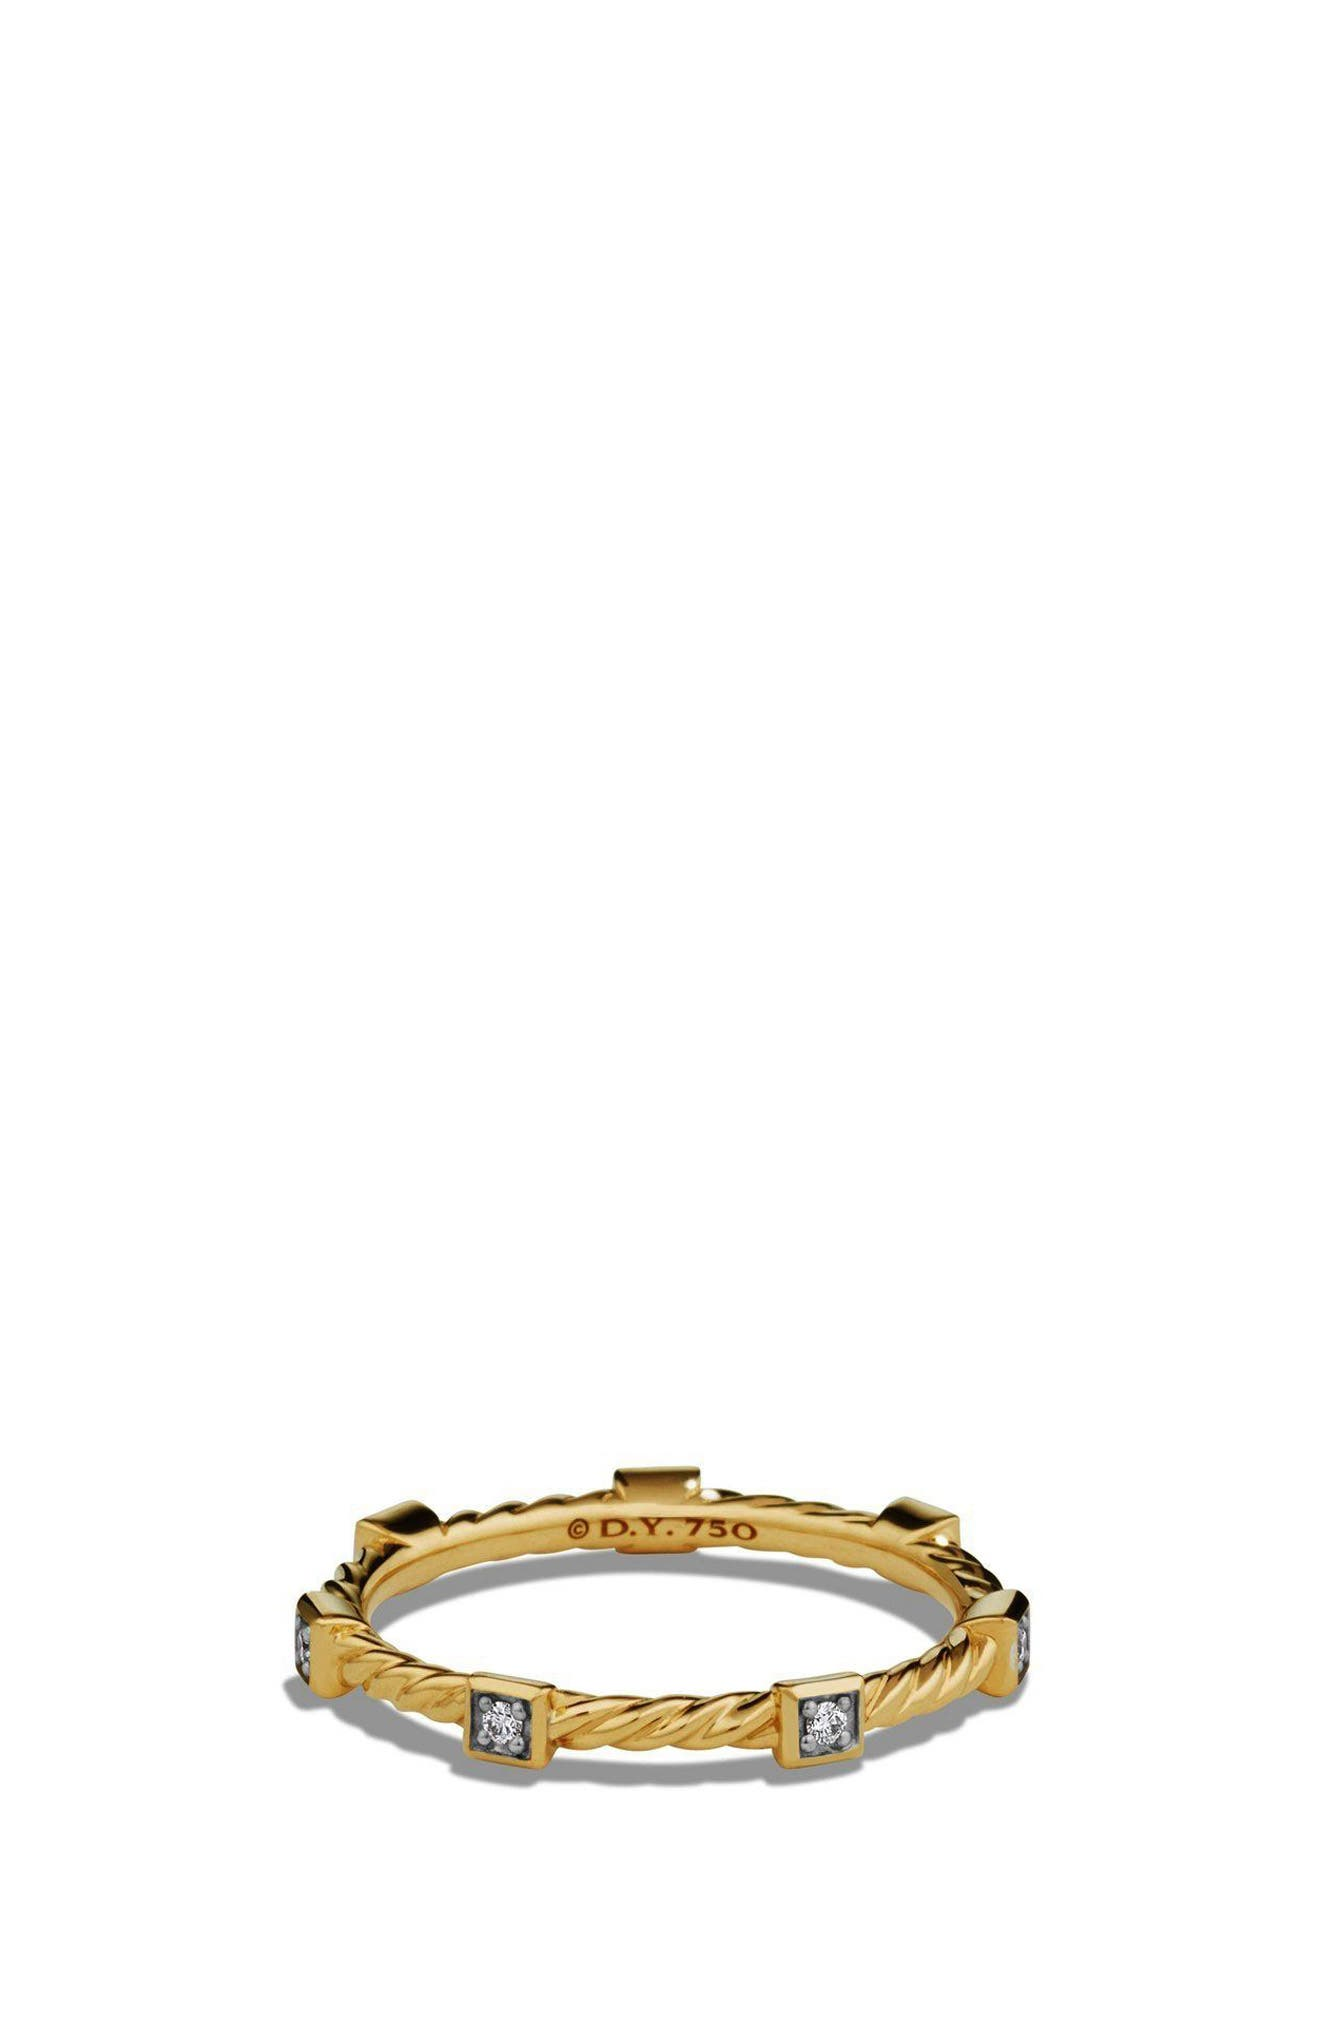 Paveflex Ring with Diamonds in 18K Gold, 2.7mm,                             Main thumbnail 1, color,                             18K YELLOW GOLD/ DIAMOND